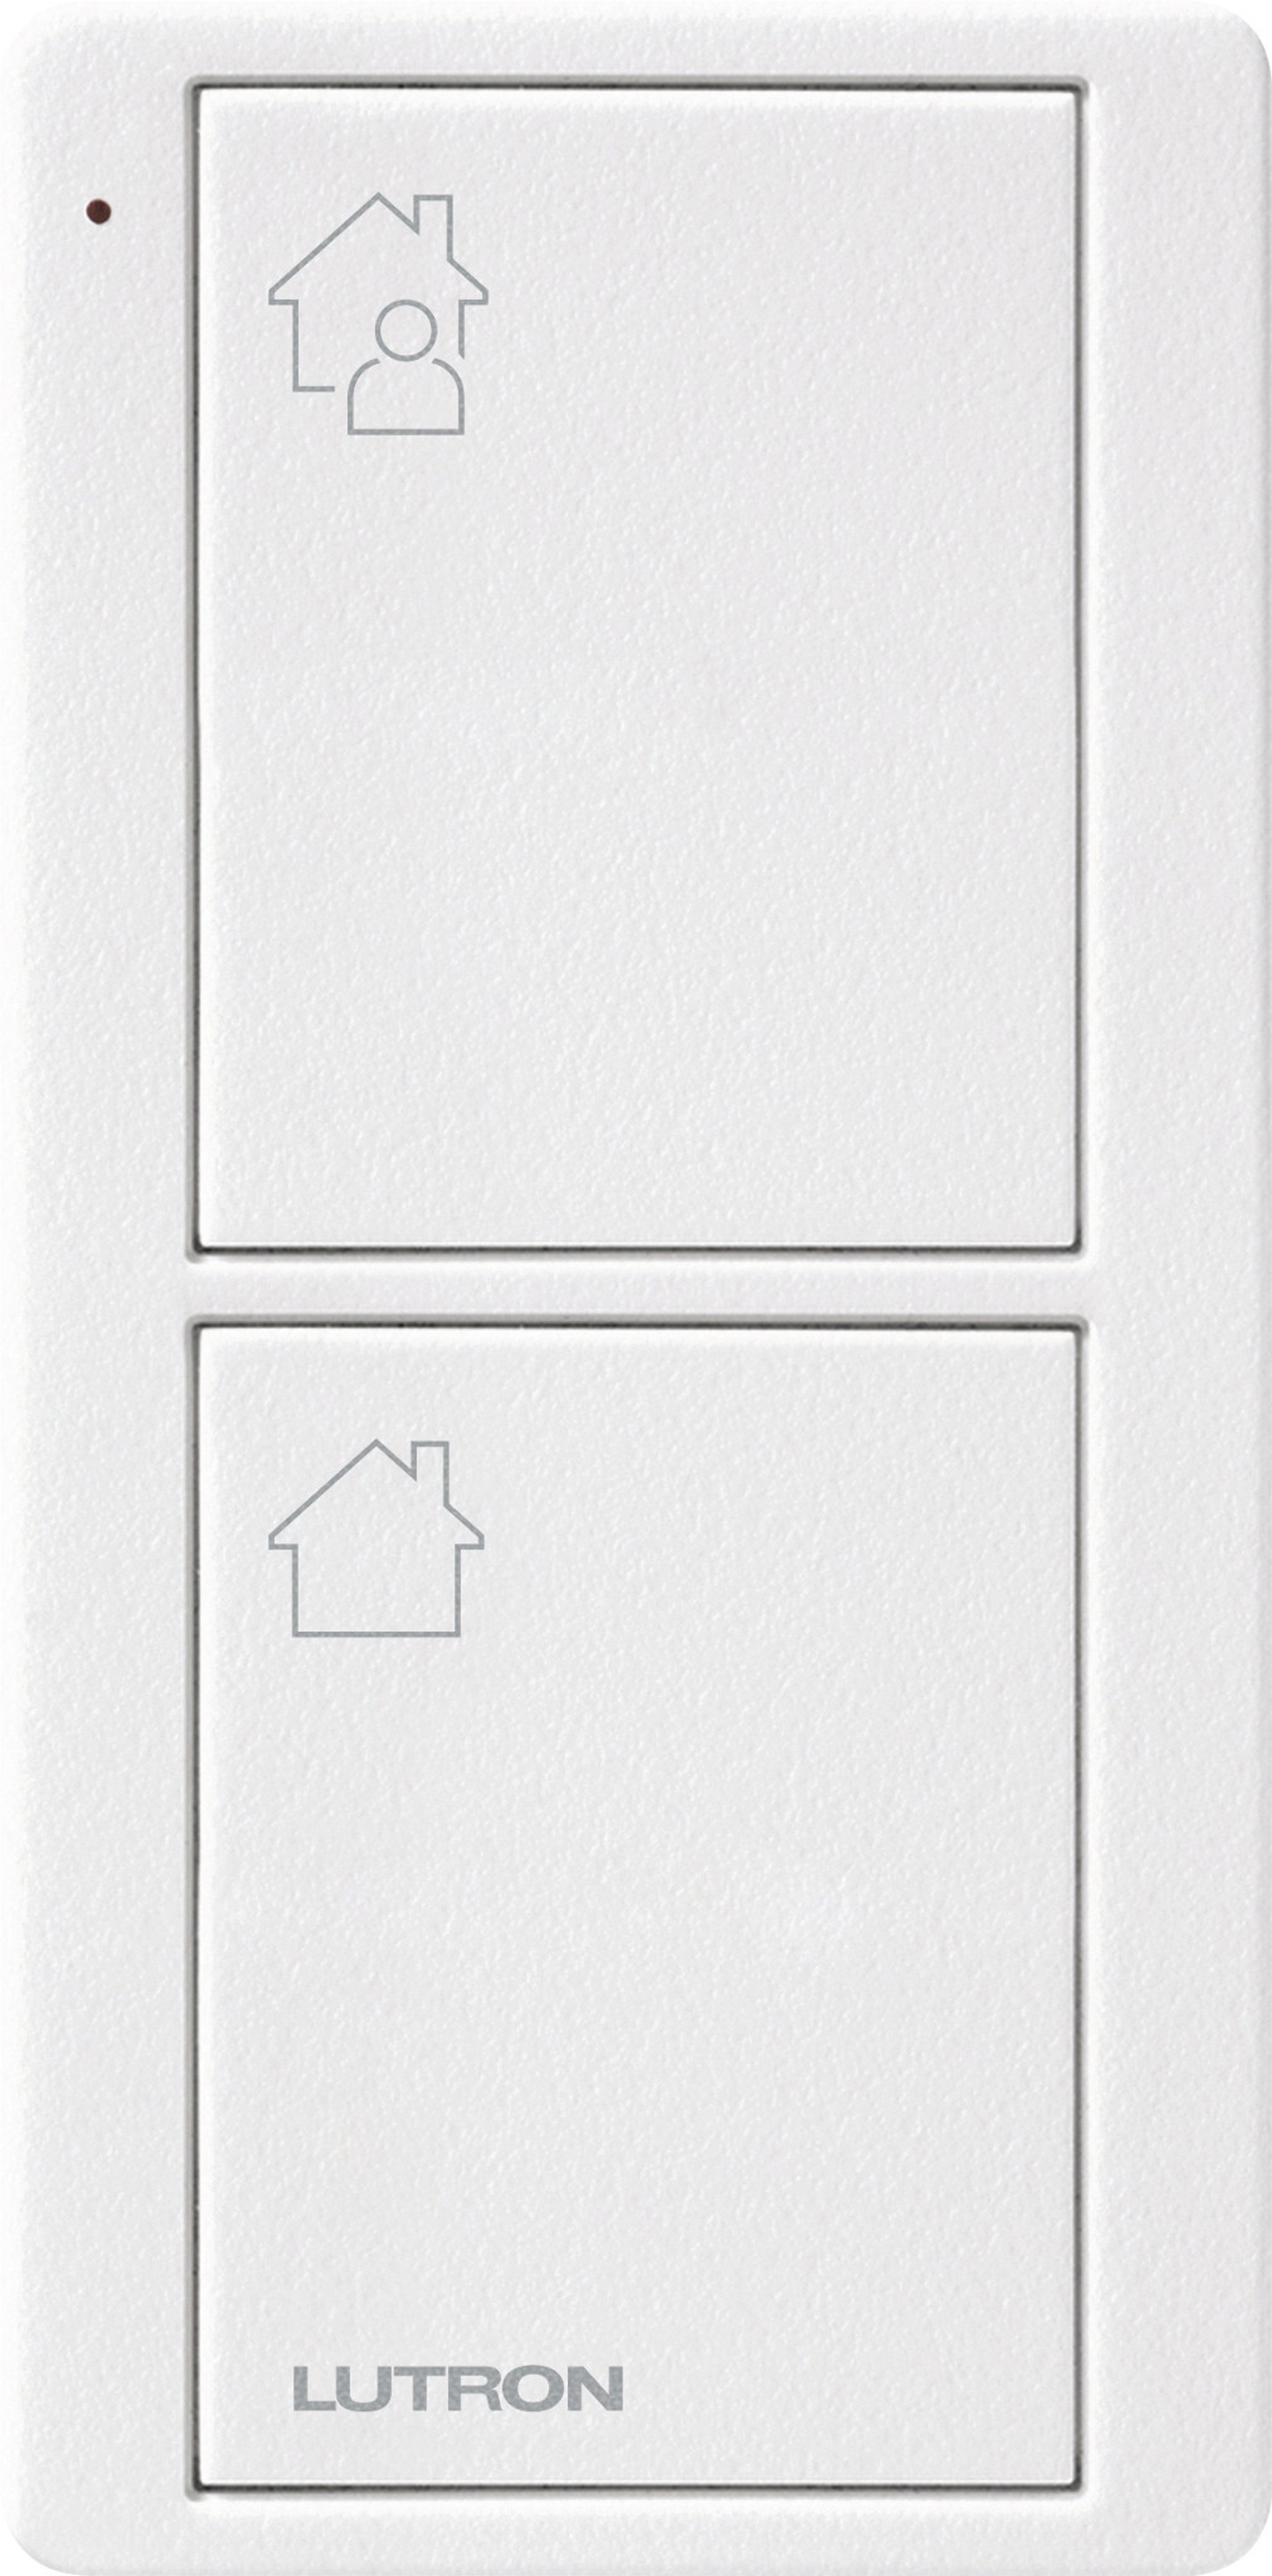 Lutron Pico RF 2 Button Control (Artic White) (Entry Model)